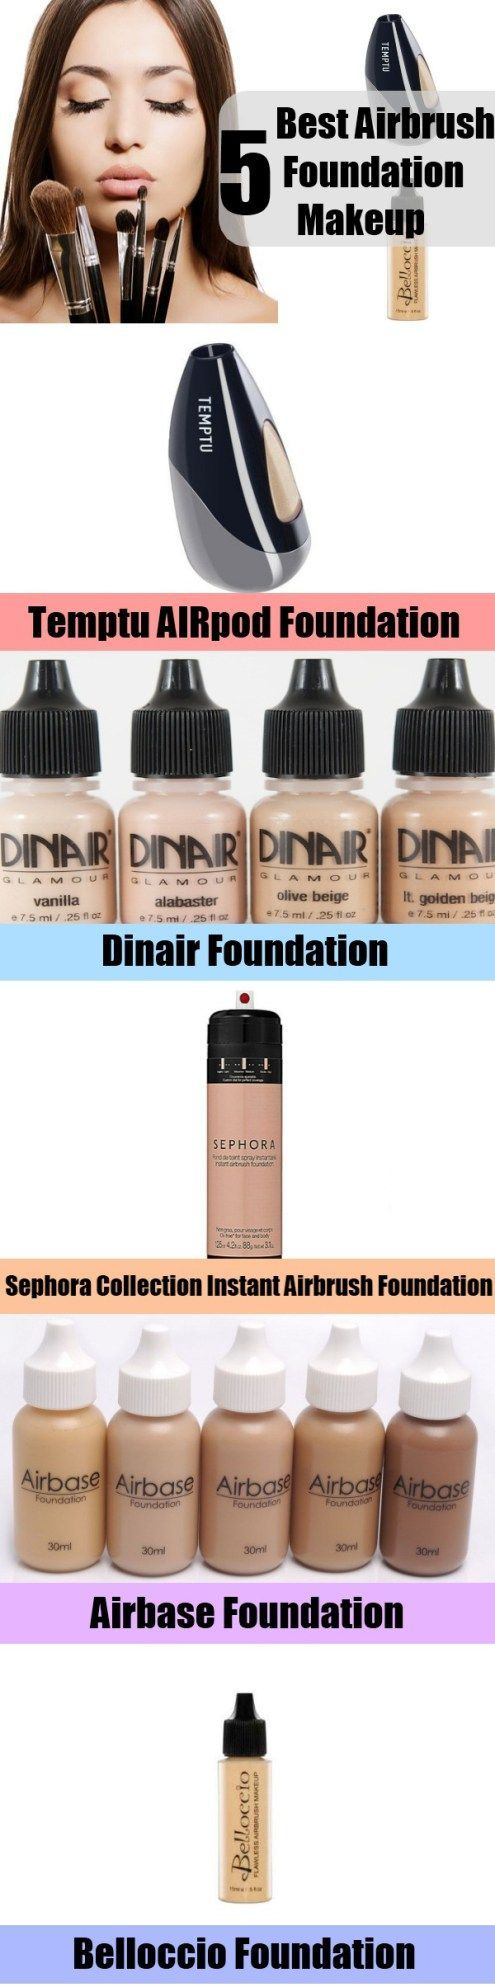 Best 5 Airbrush Foundation Makeup